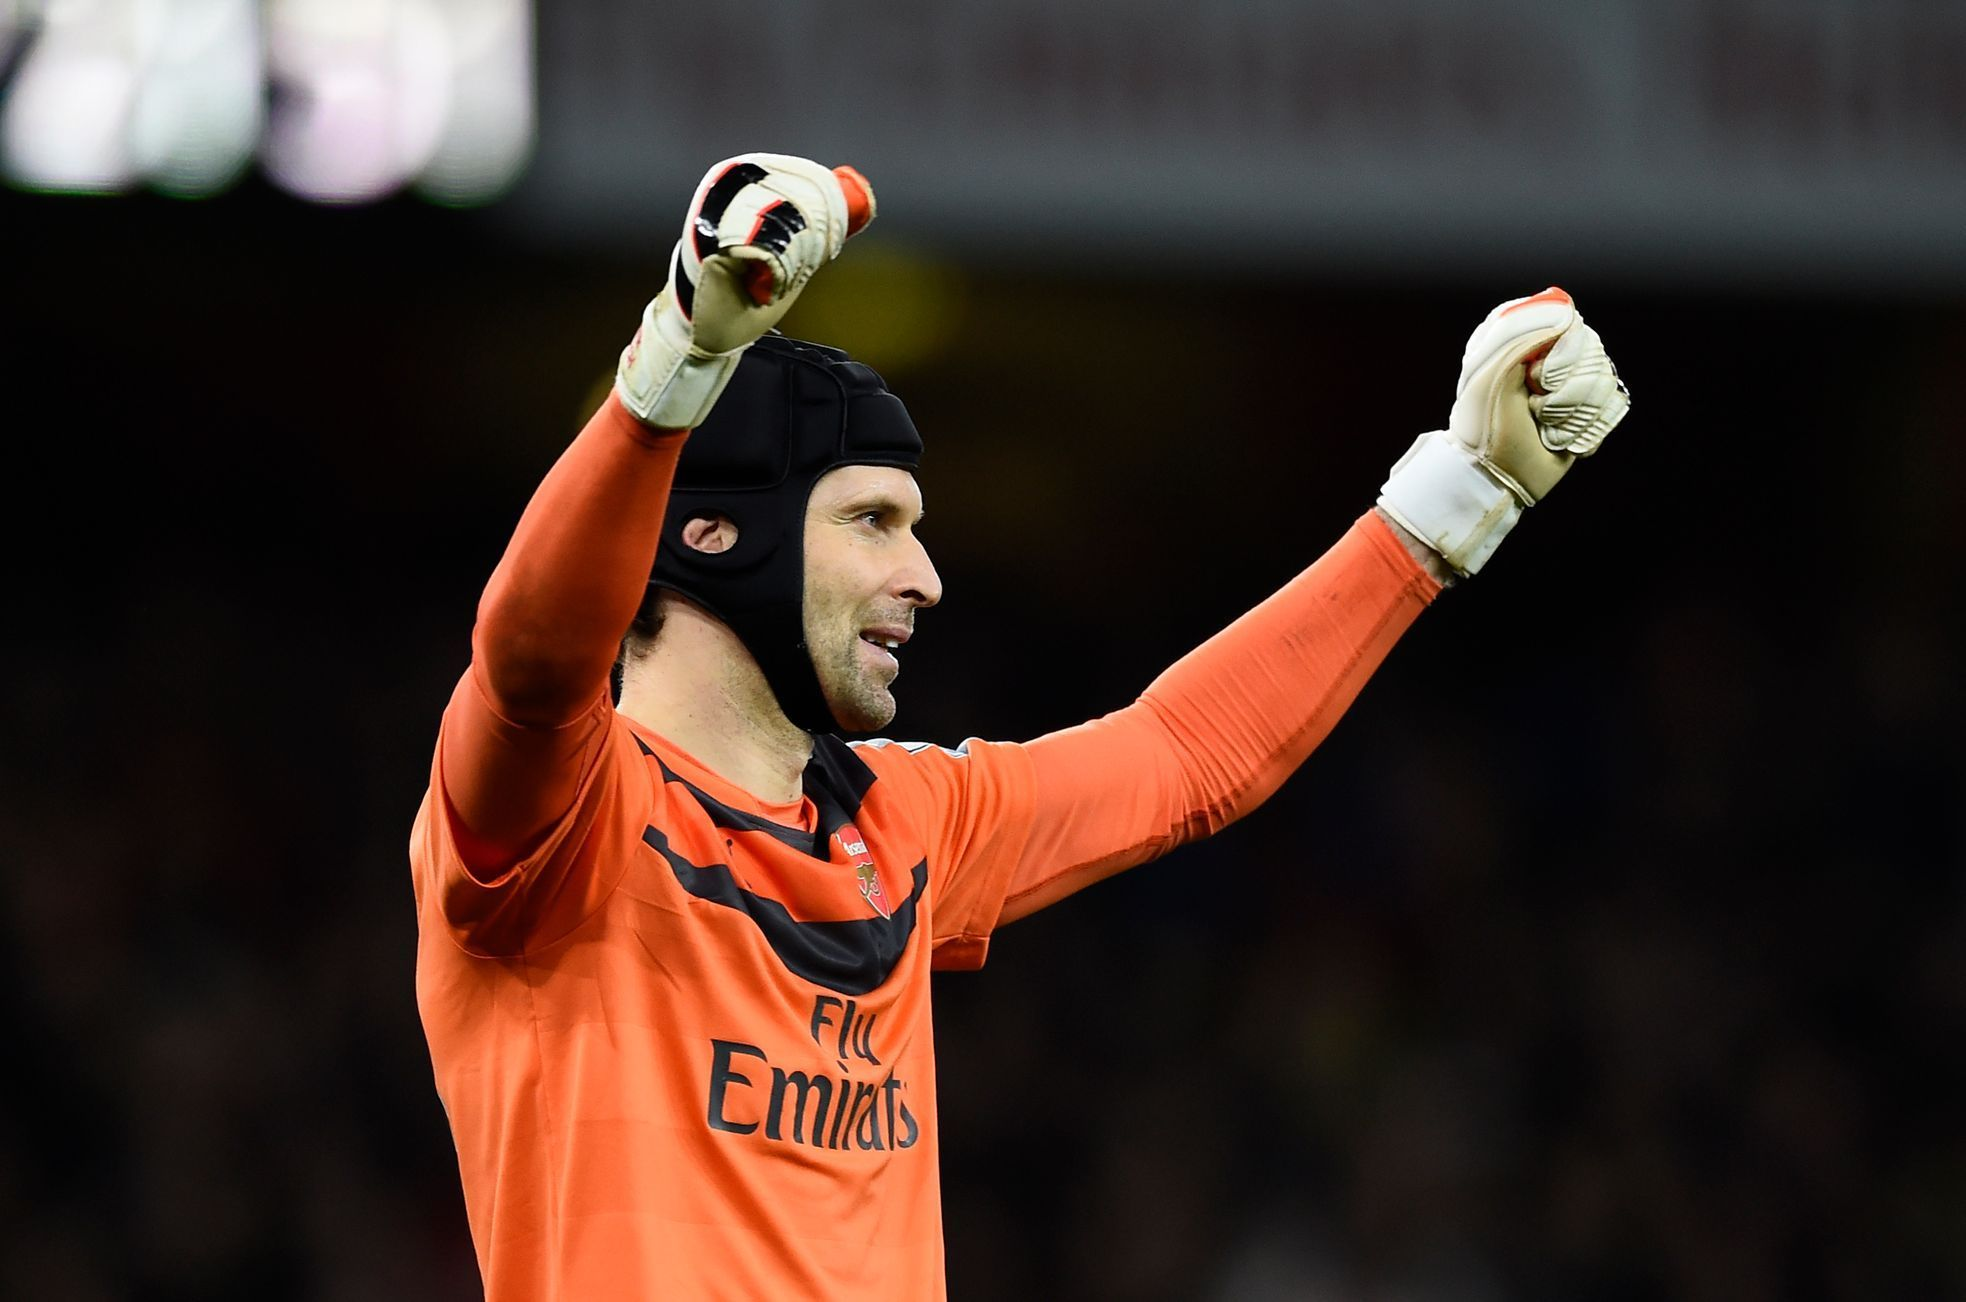 Arsenal-Manch. City: Petr Čech